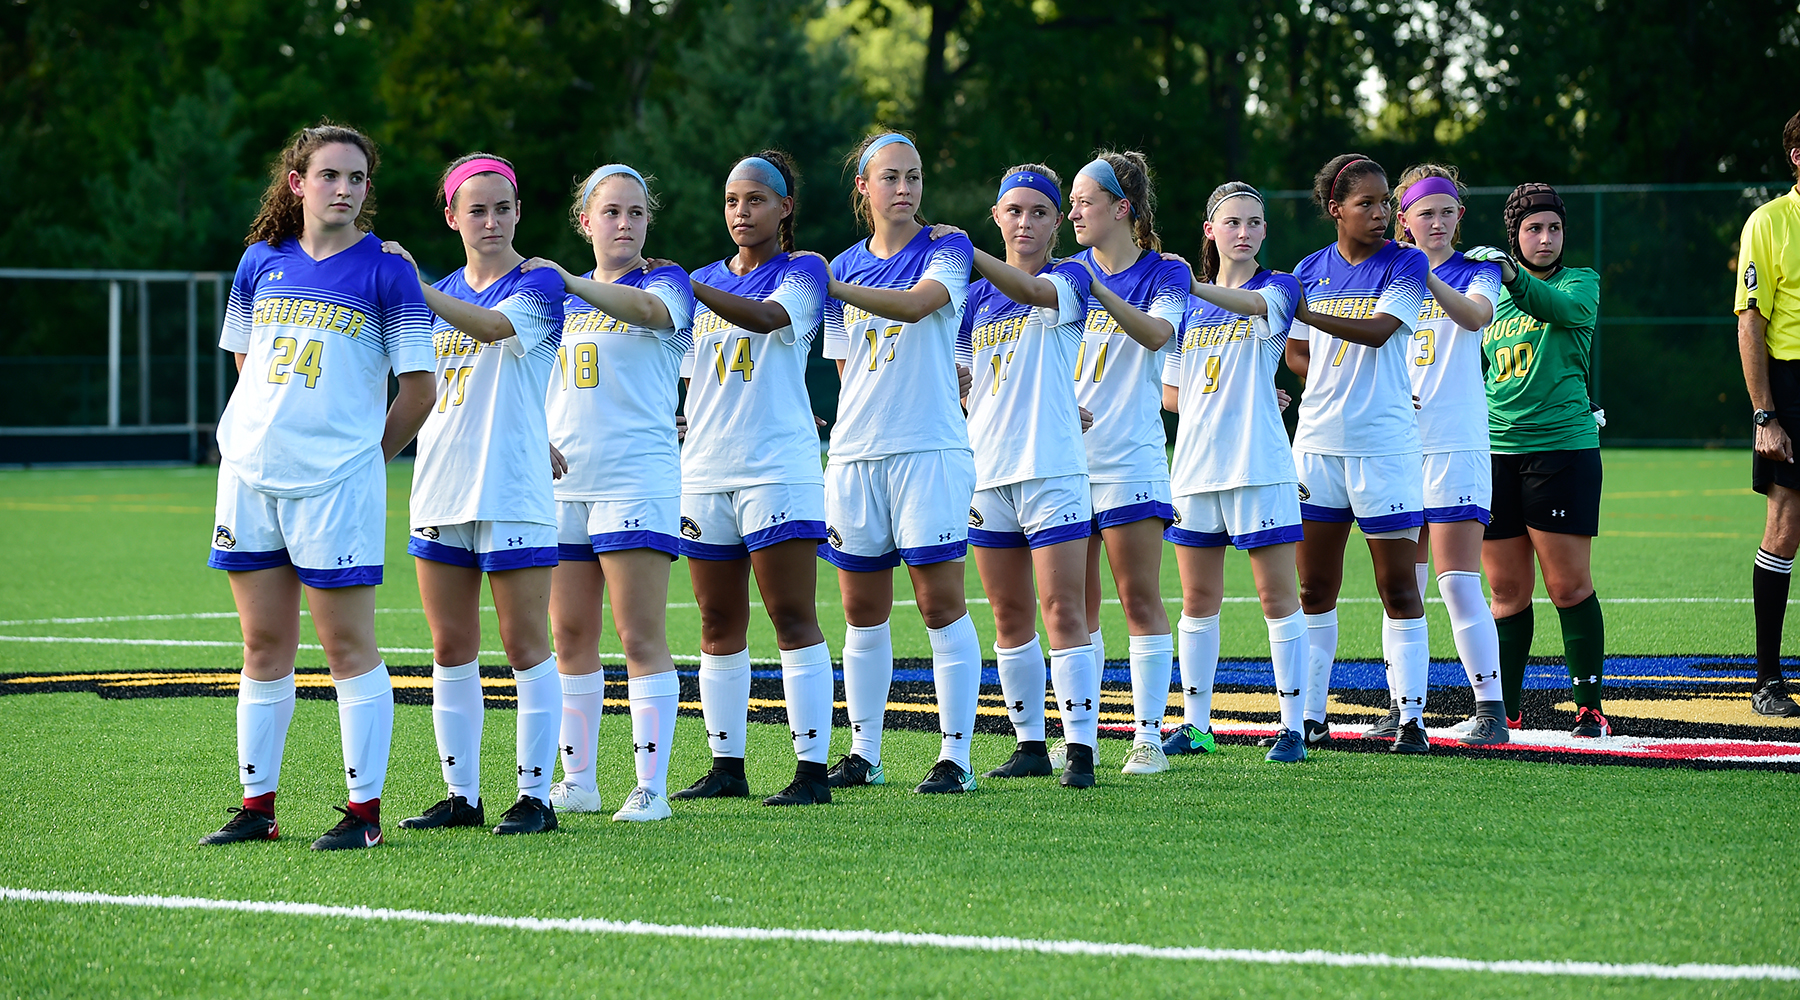 Women's Soccer Falls at Home to Widener, 2-0